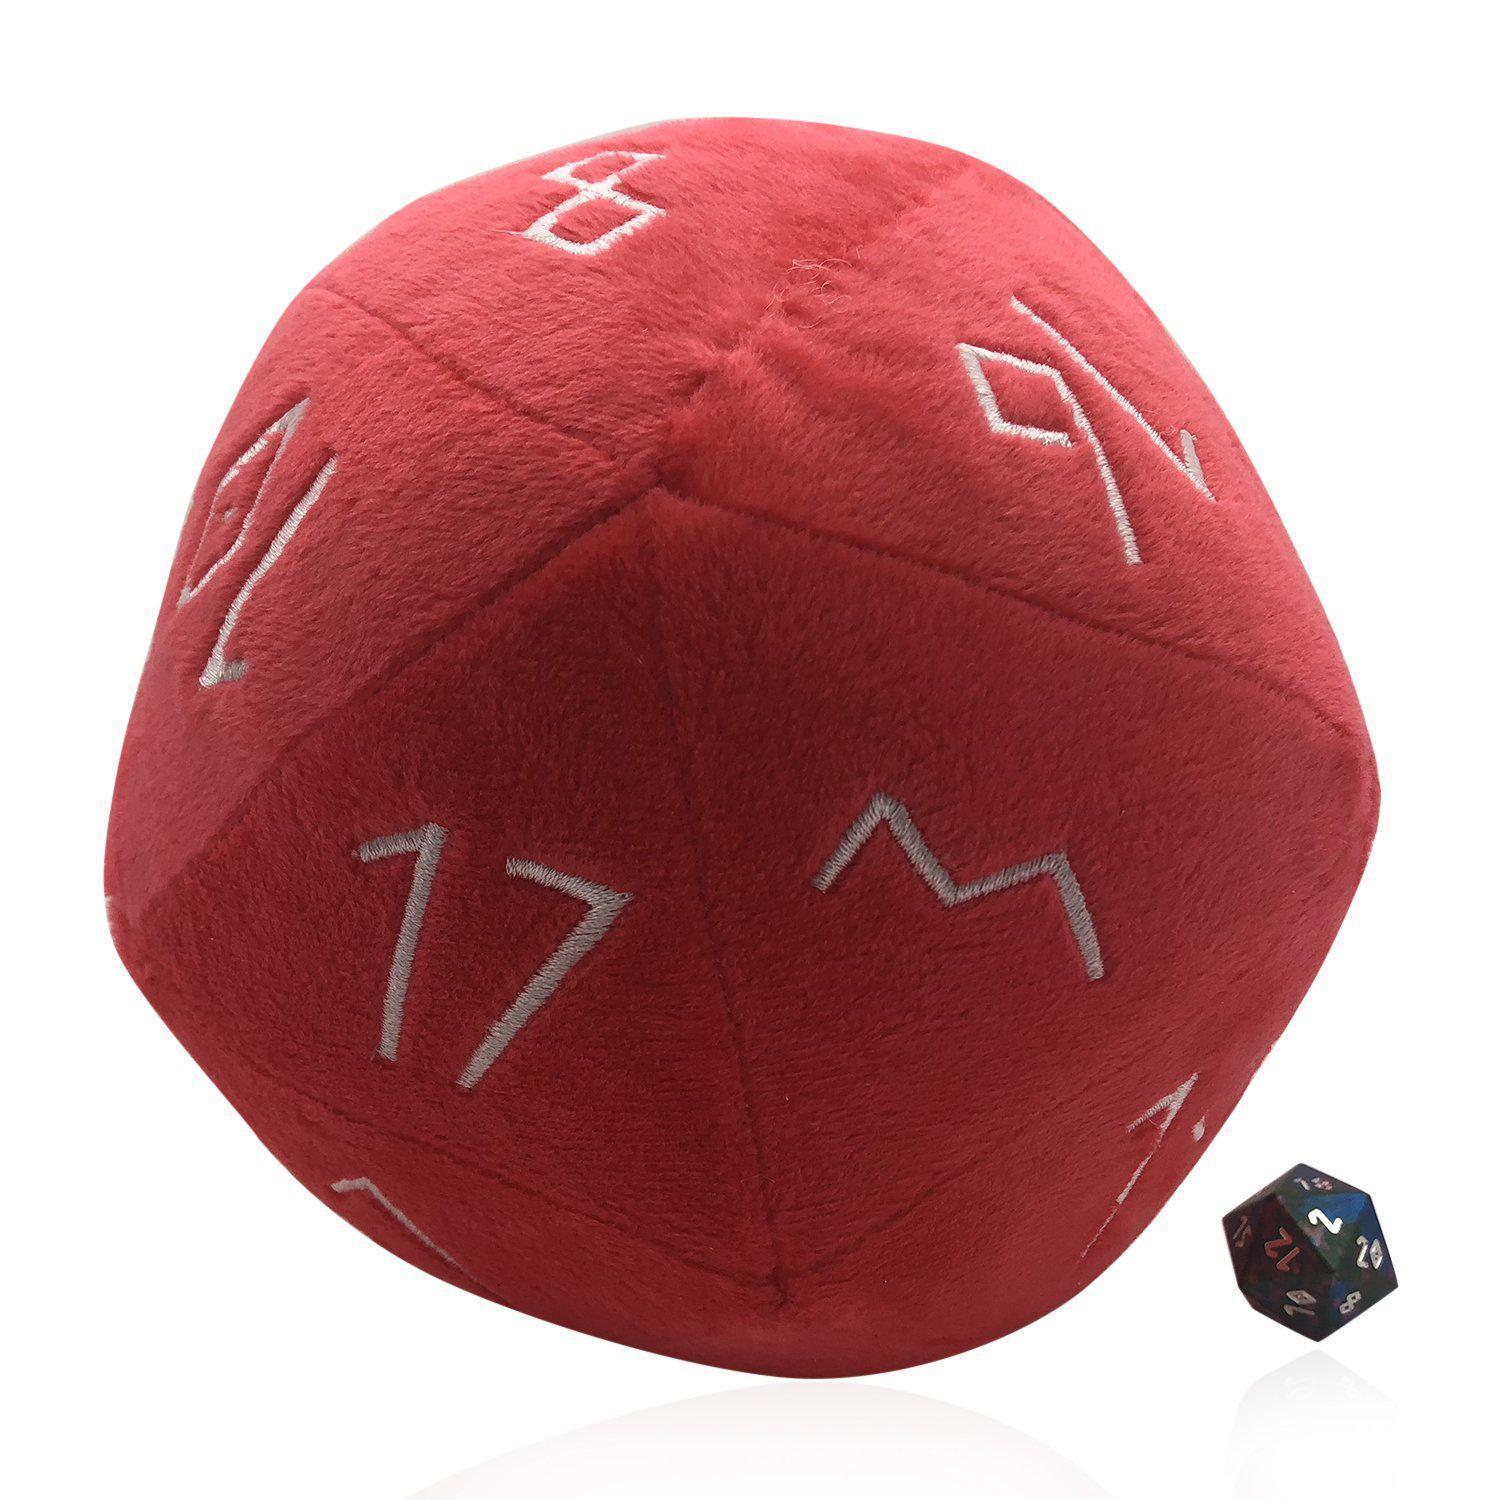 Norse Foundry: Plushie Boulder d20 Plush Soft Die | Davis Cards & Games